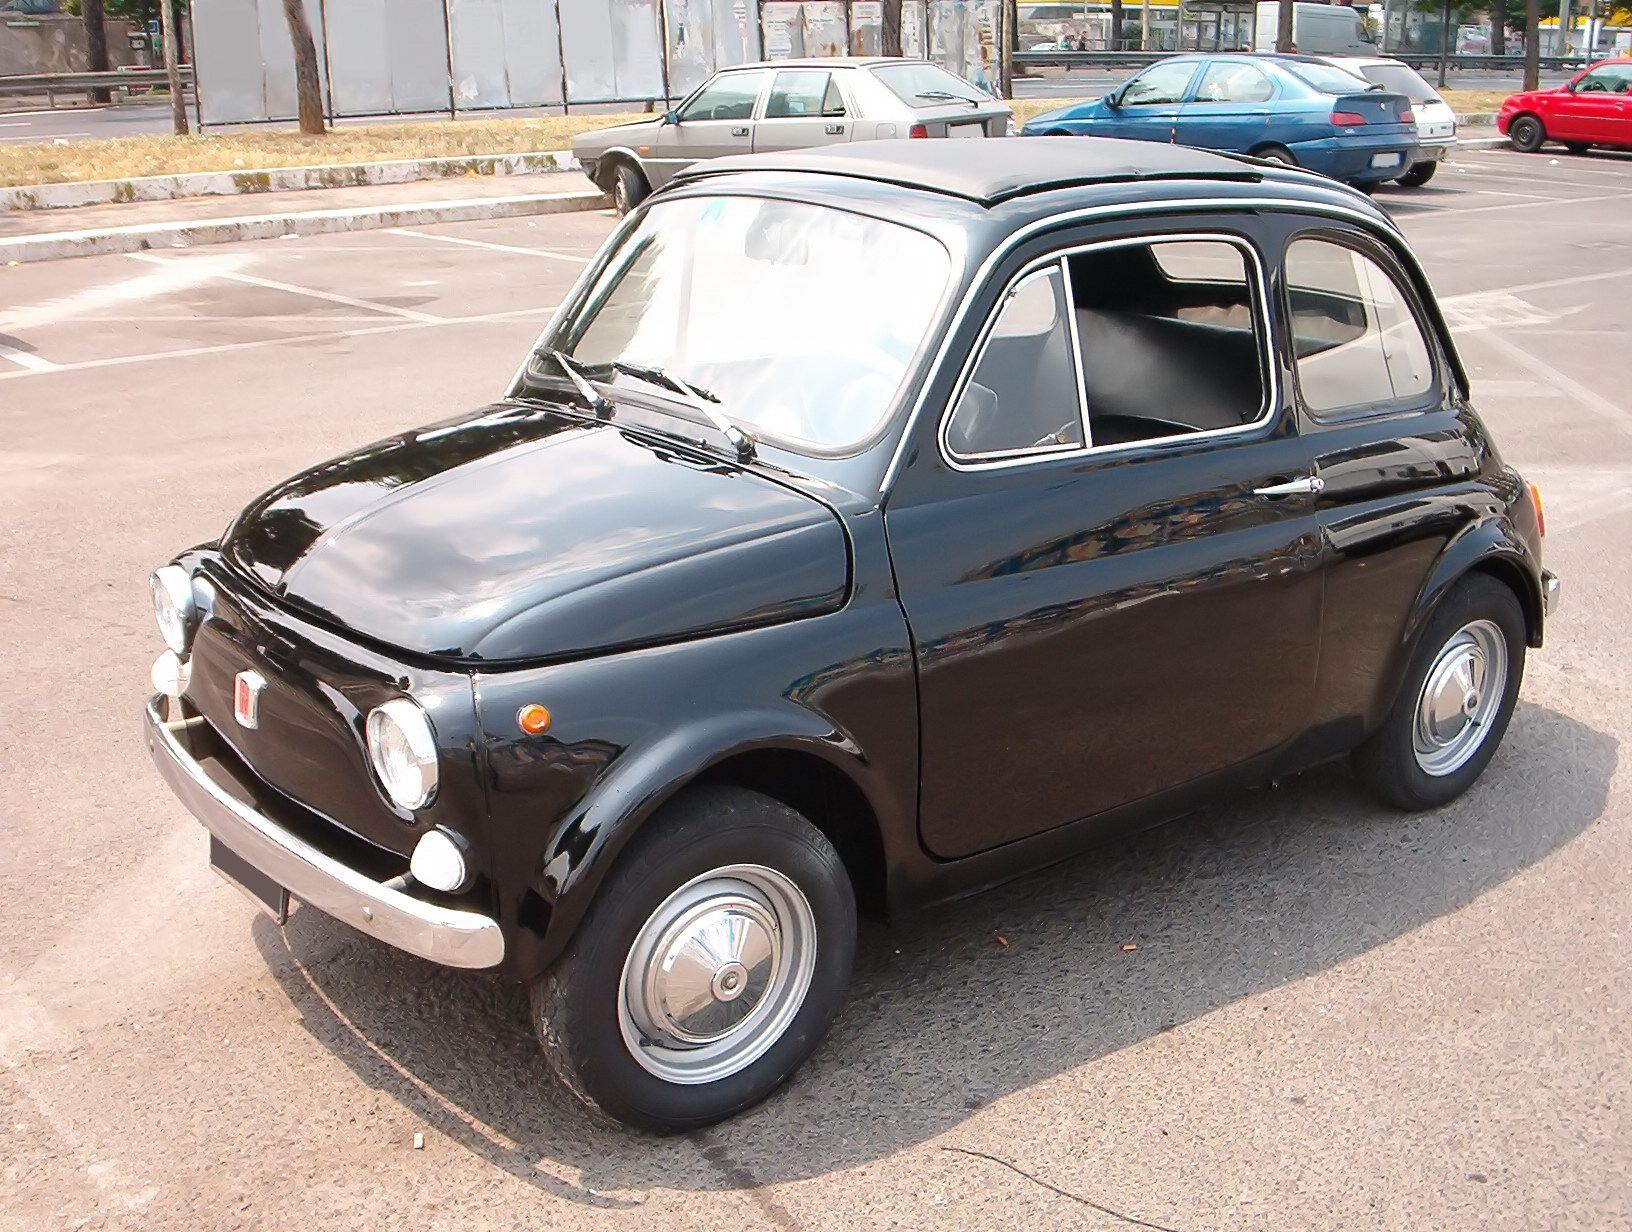 https://upload.wikimedia.org/wikipedia/commons/d/dc/1965_black_Fiat_500.jpg